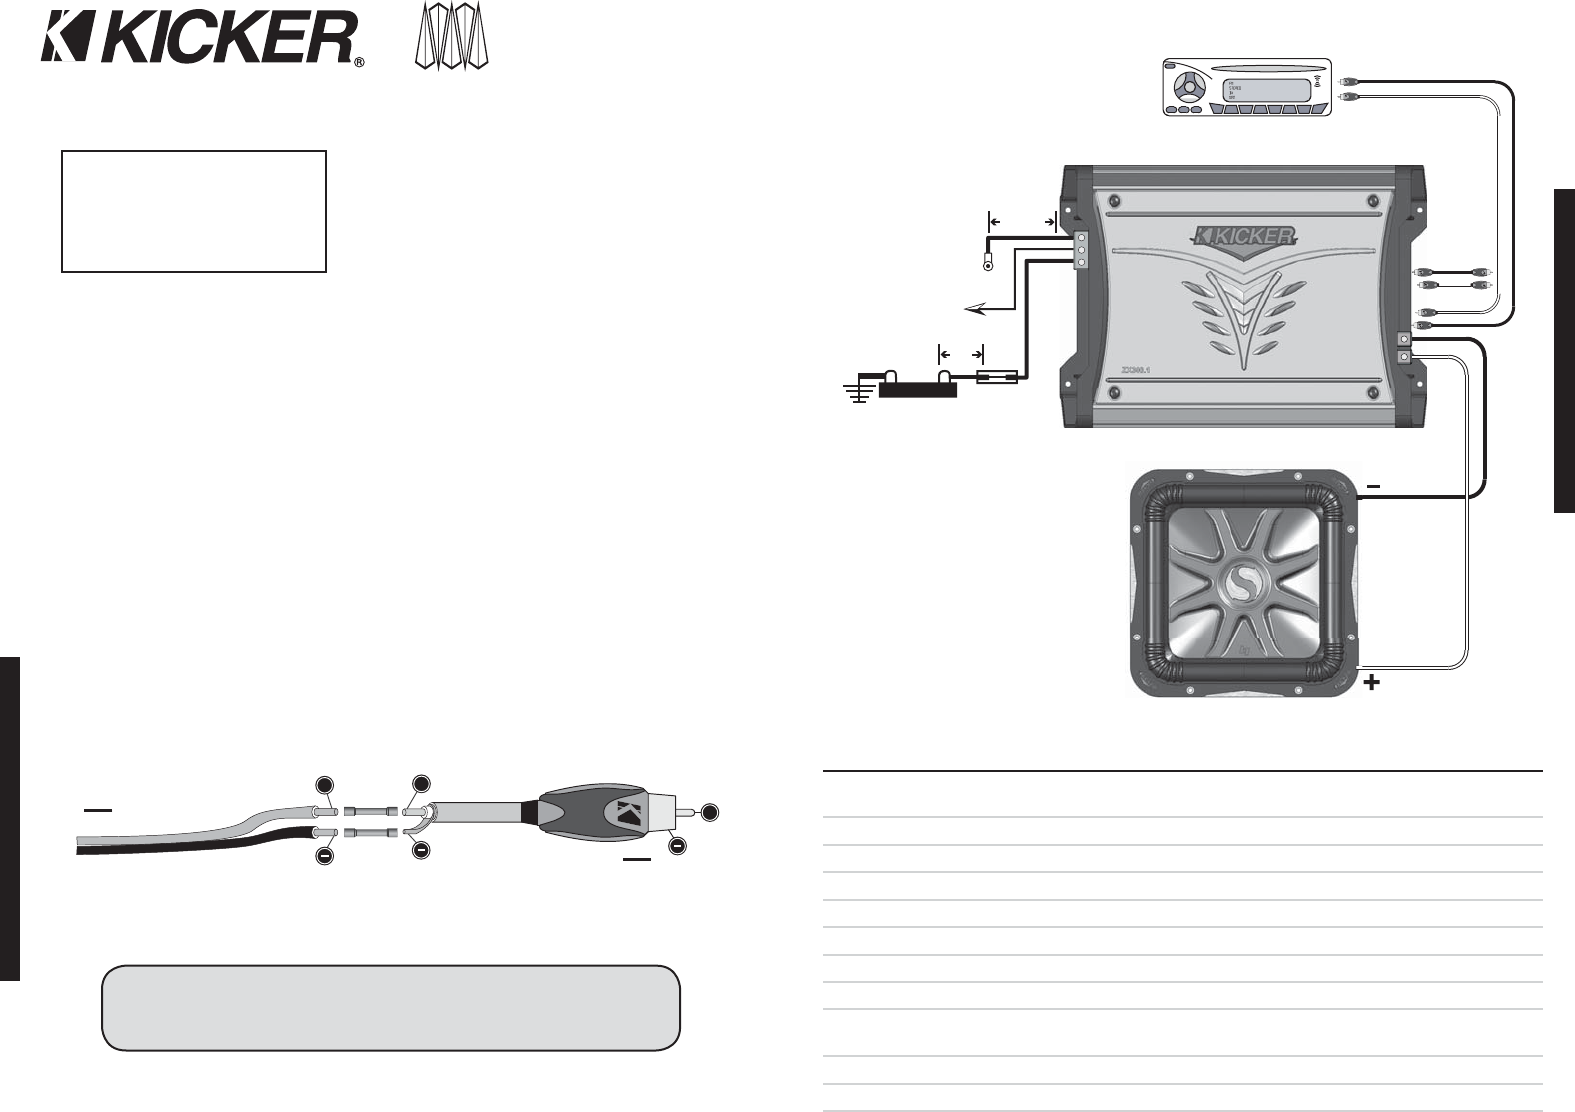 770284a1 acea 49dd a2d5 008464a26d2e bg2 wiring diagram for kicker led speakers wiring discover your kicker solo baric l7 wiring diagram at bayanpartner.co